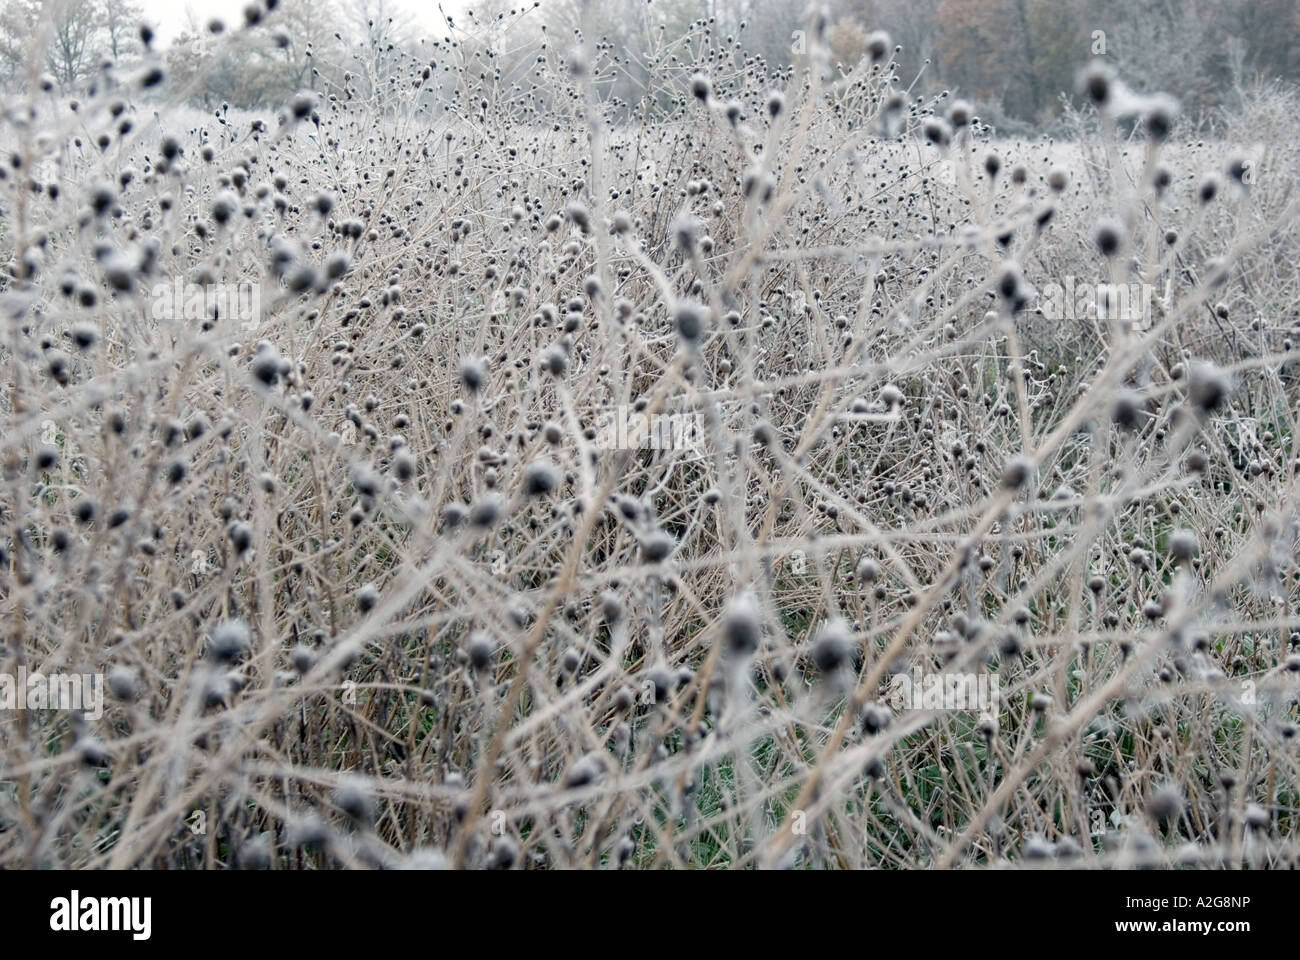 looking in to a field with twigs and undergrowth covered with frost icicles - Stock Image